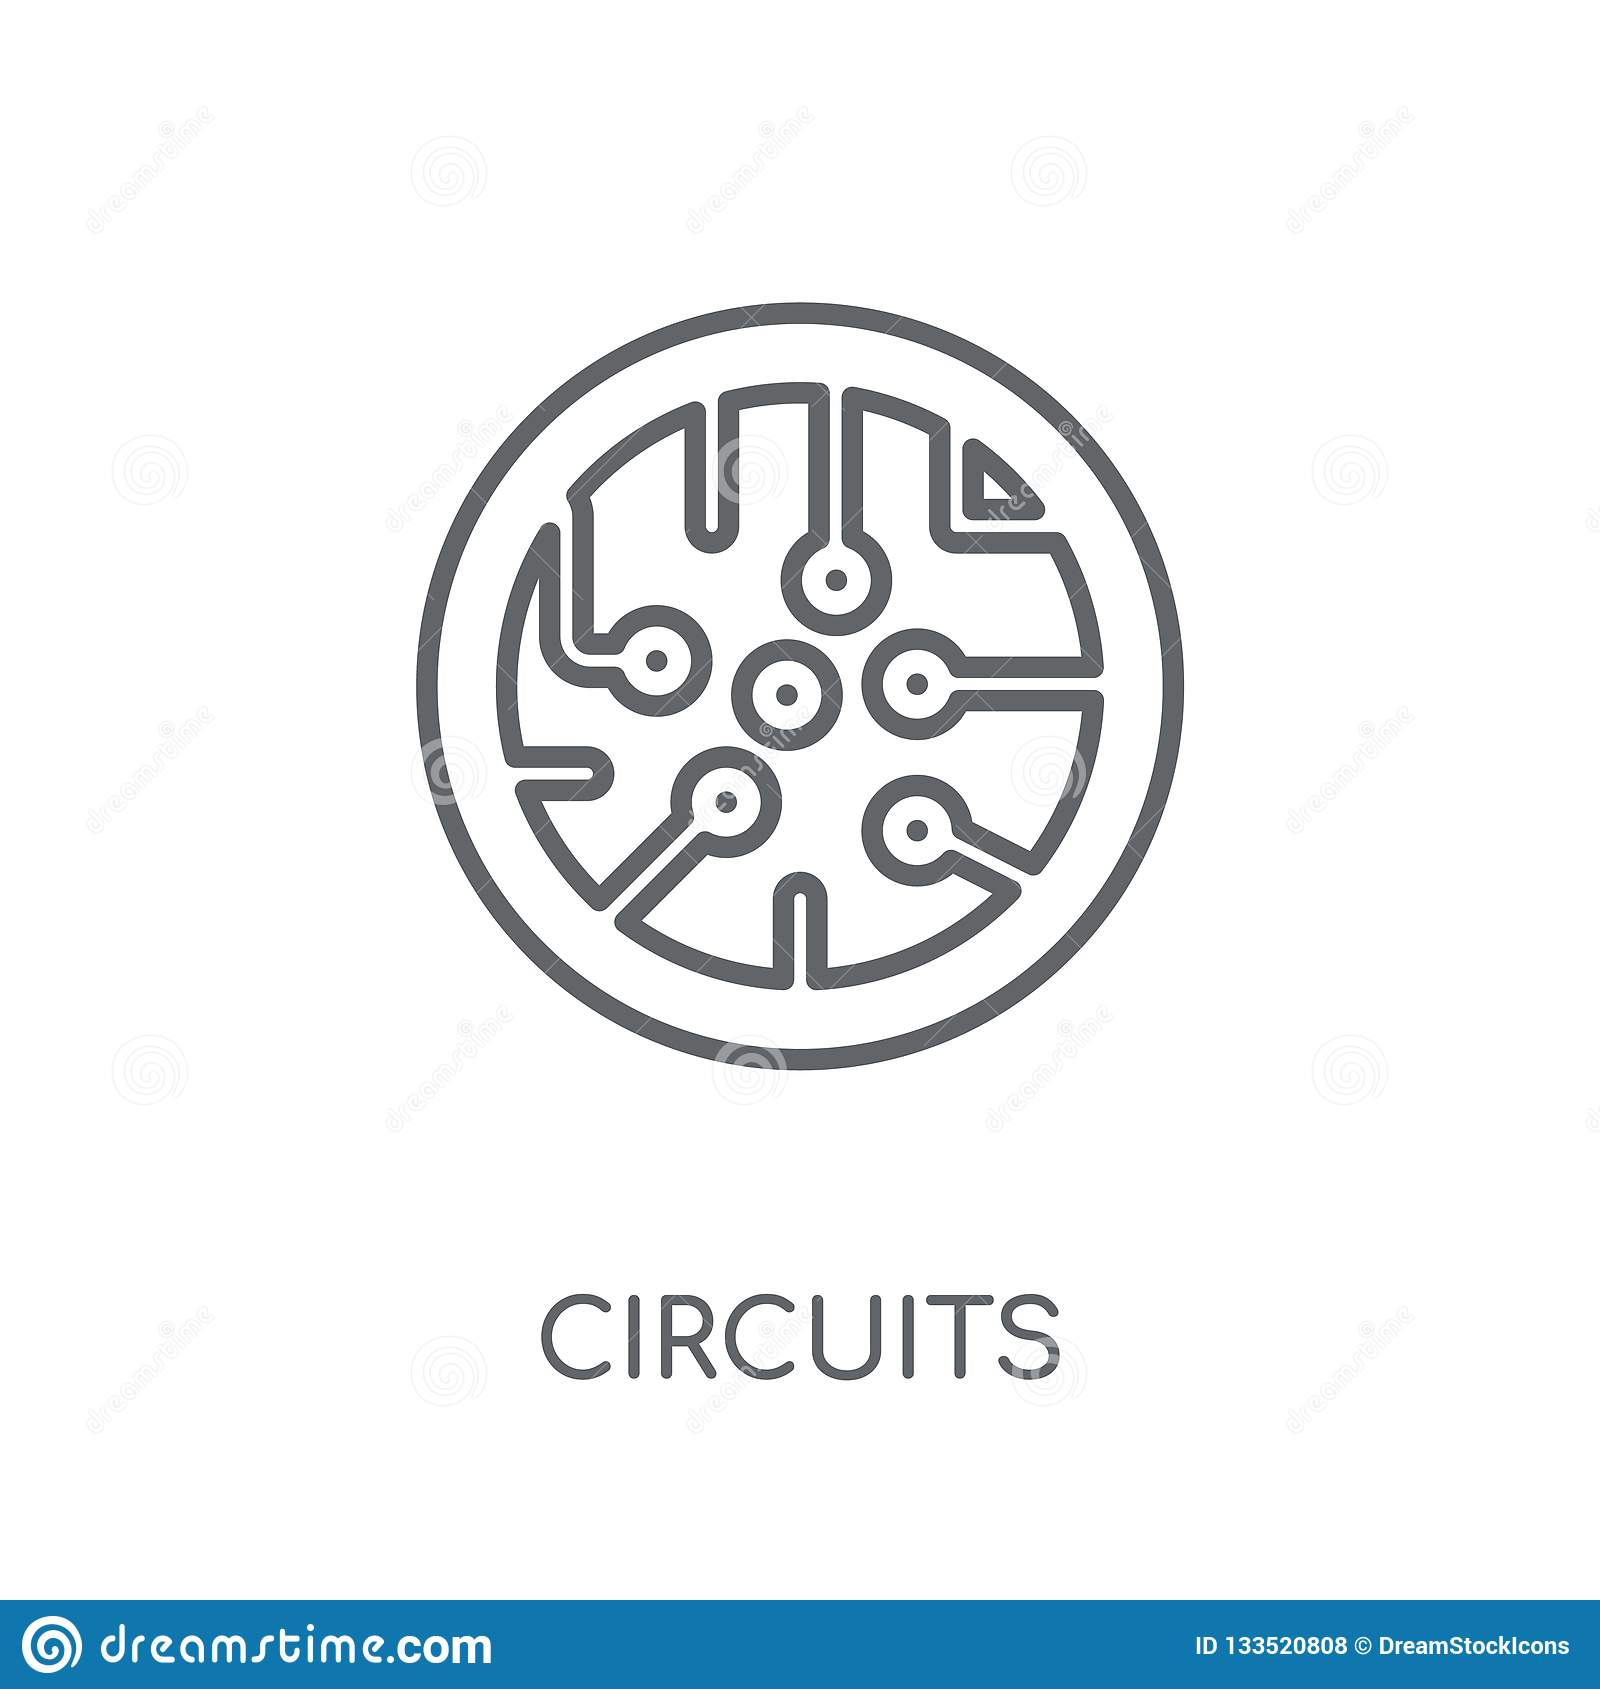 Circuits linear icon. Modern outline Circuits logo concept on wh